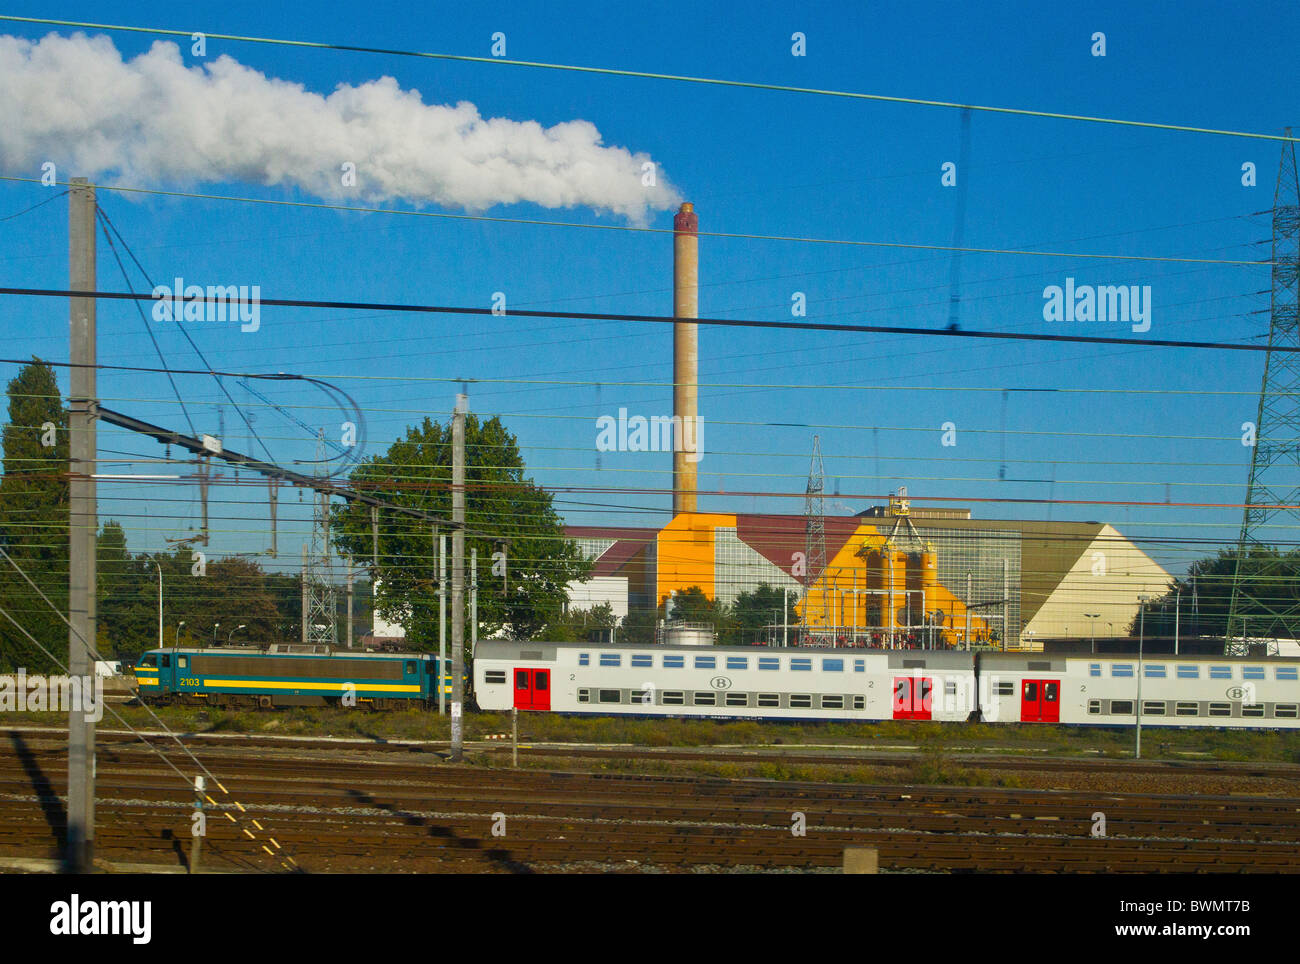 Train Power Station Electricity Electric Generation Generating Stock Powering A Transport Chimney Smoke Steam Railway Engine Carriage Rail